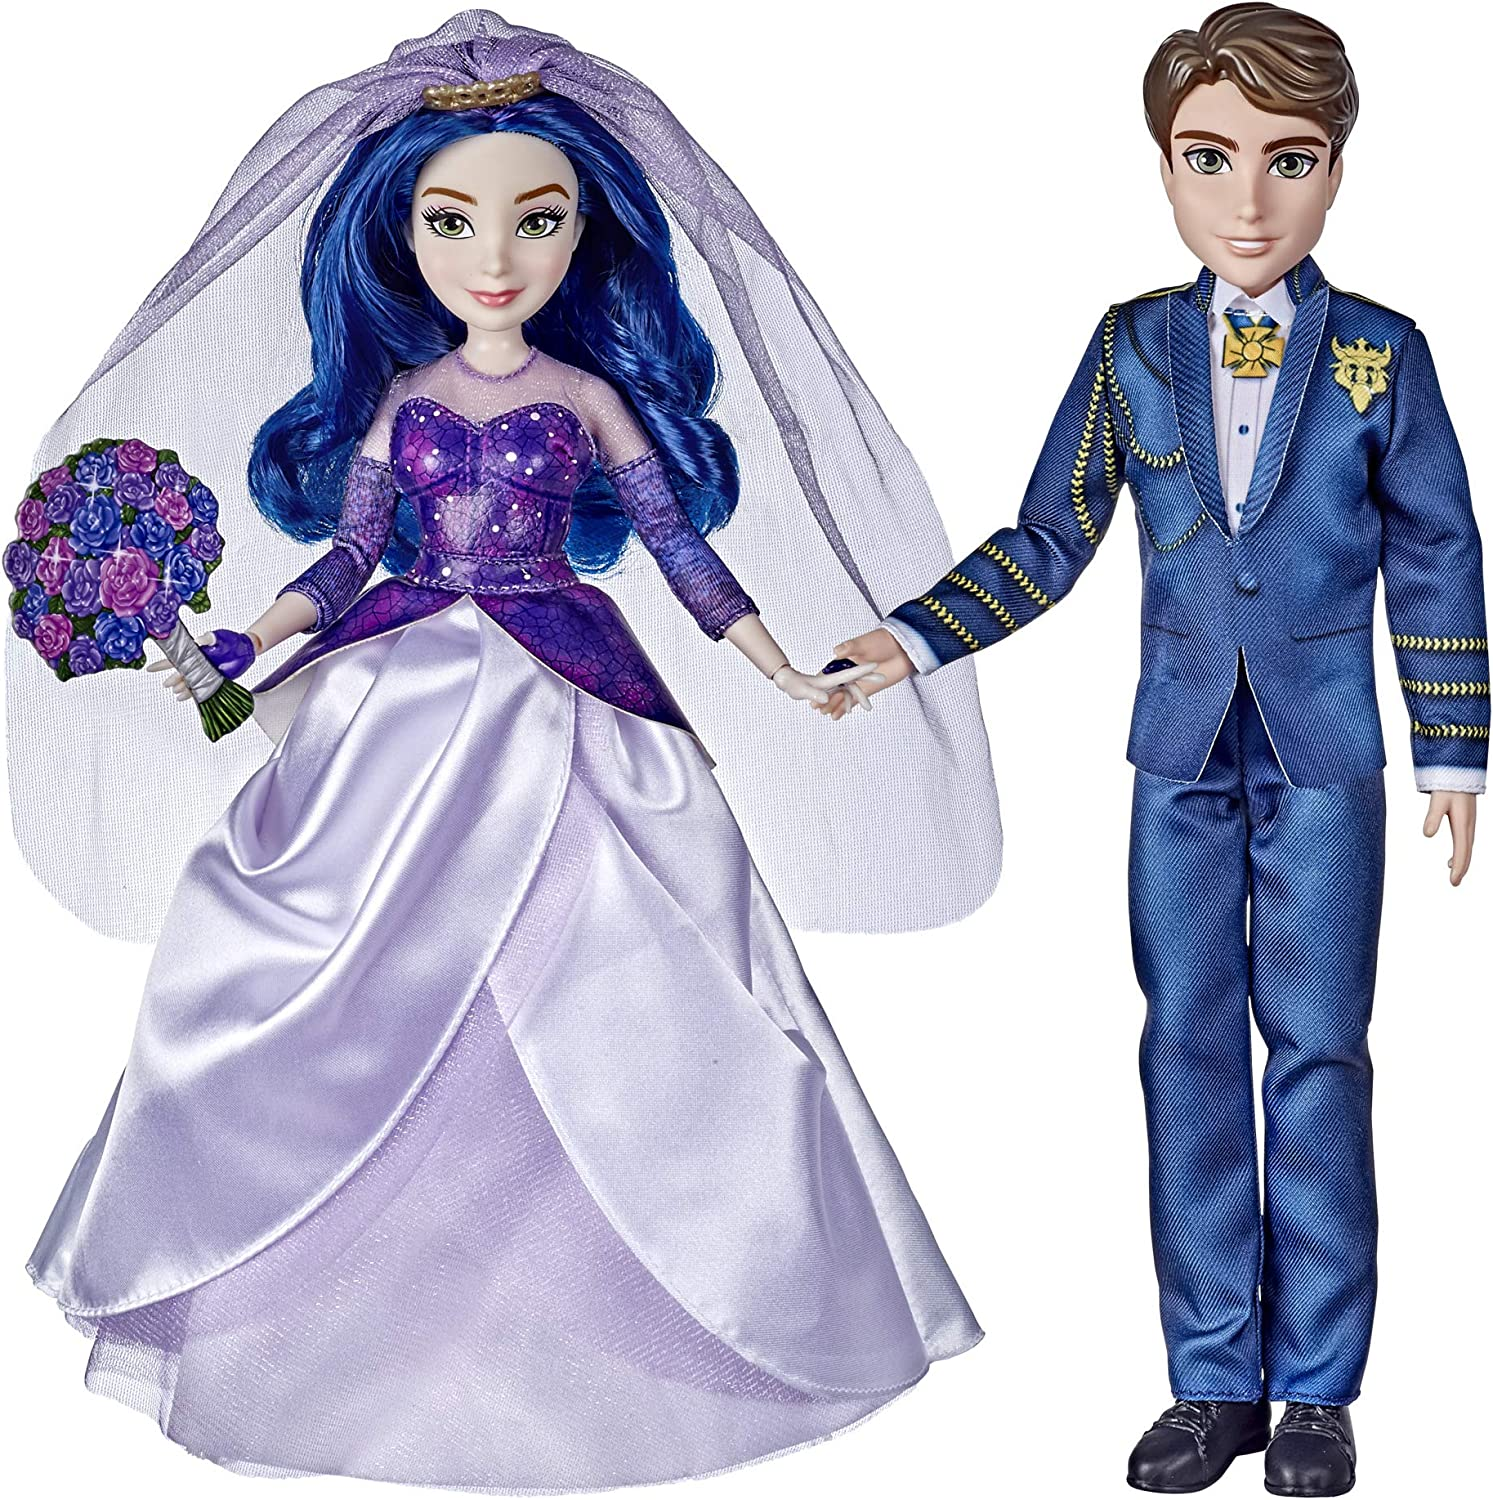 Amazon Com Disney Descendants Mal And Ben Dolls Inspired By Disney The Royal Wedding A Descendants Story Toys Include Outfits Shoes And Fashion Accessories Toys Games